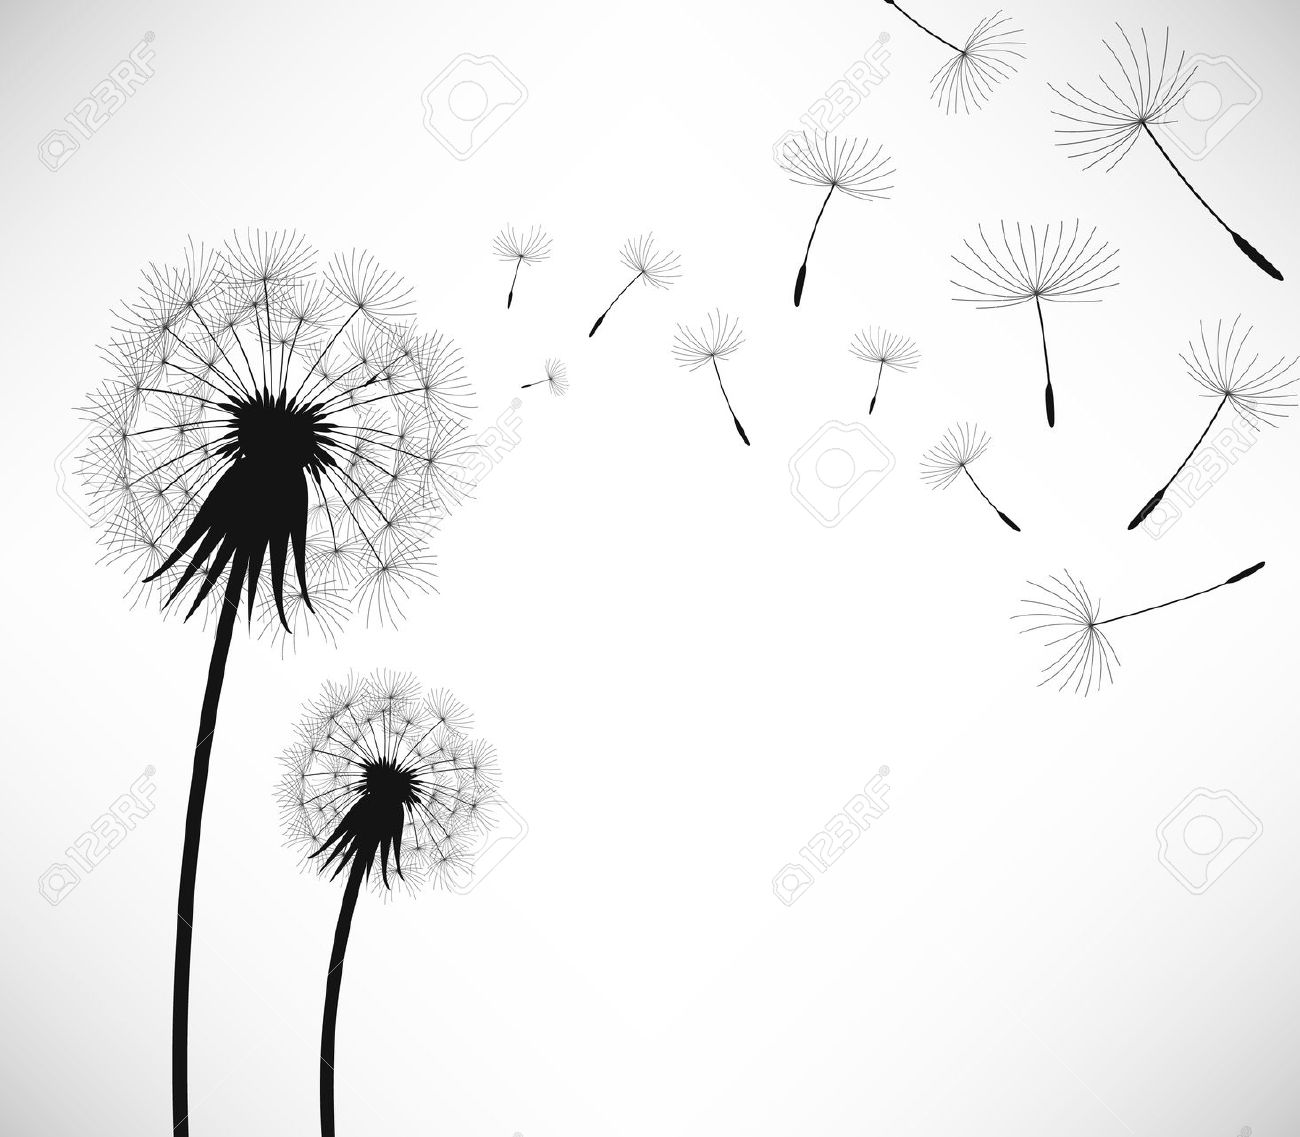 Wishing flower clipart picture royalty free download A Spectacle of Life | Weekly Tides picture royalty free download